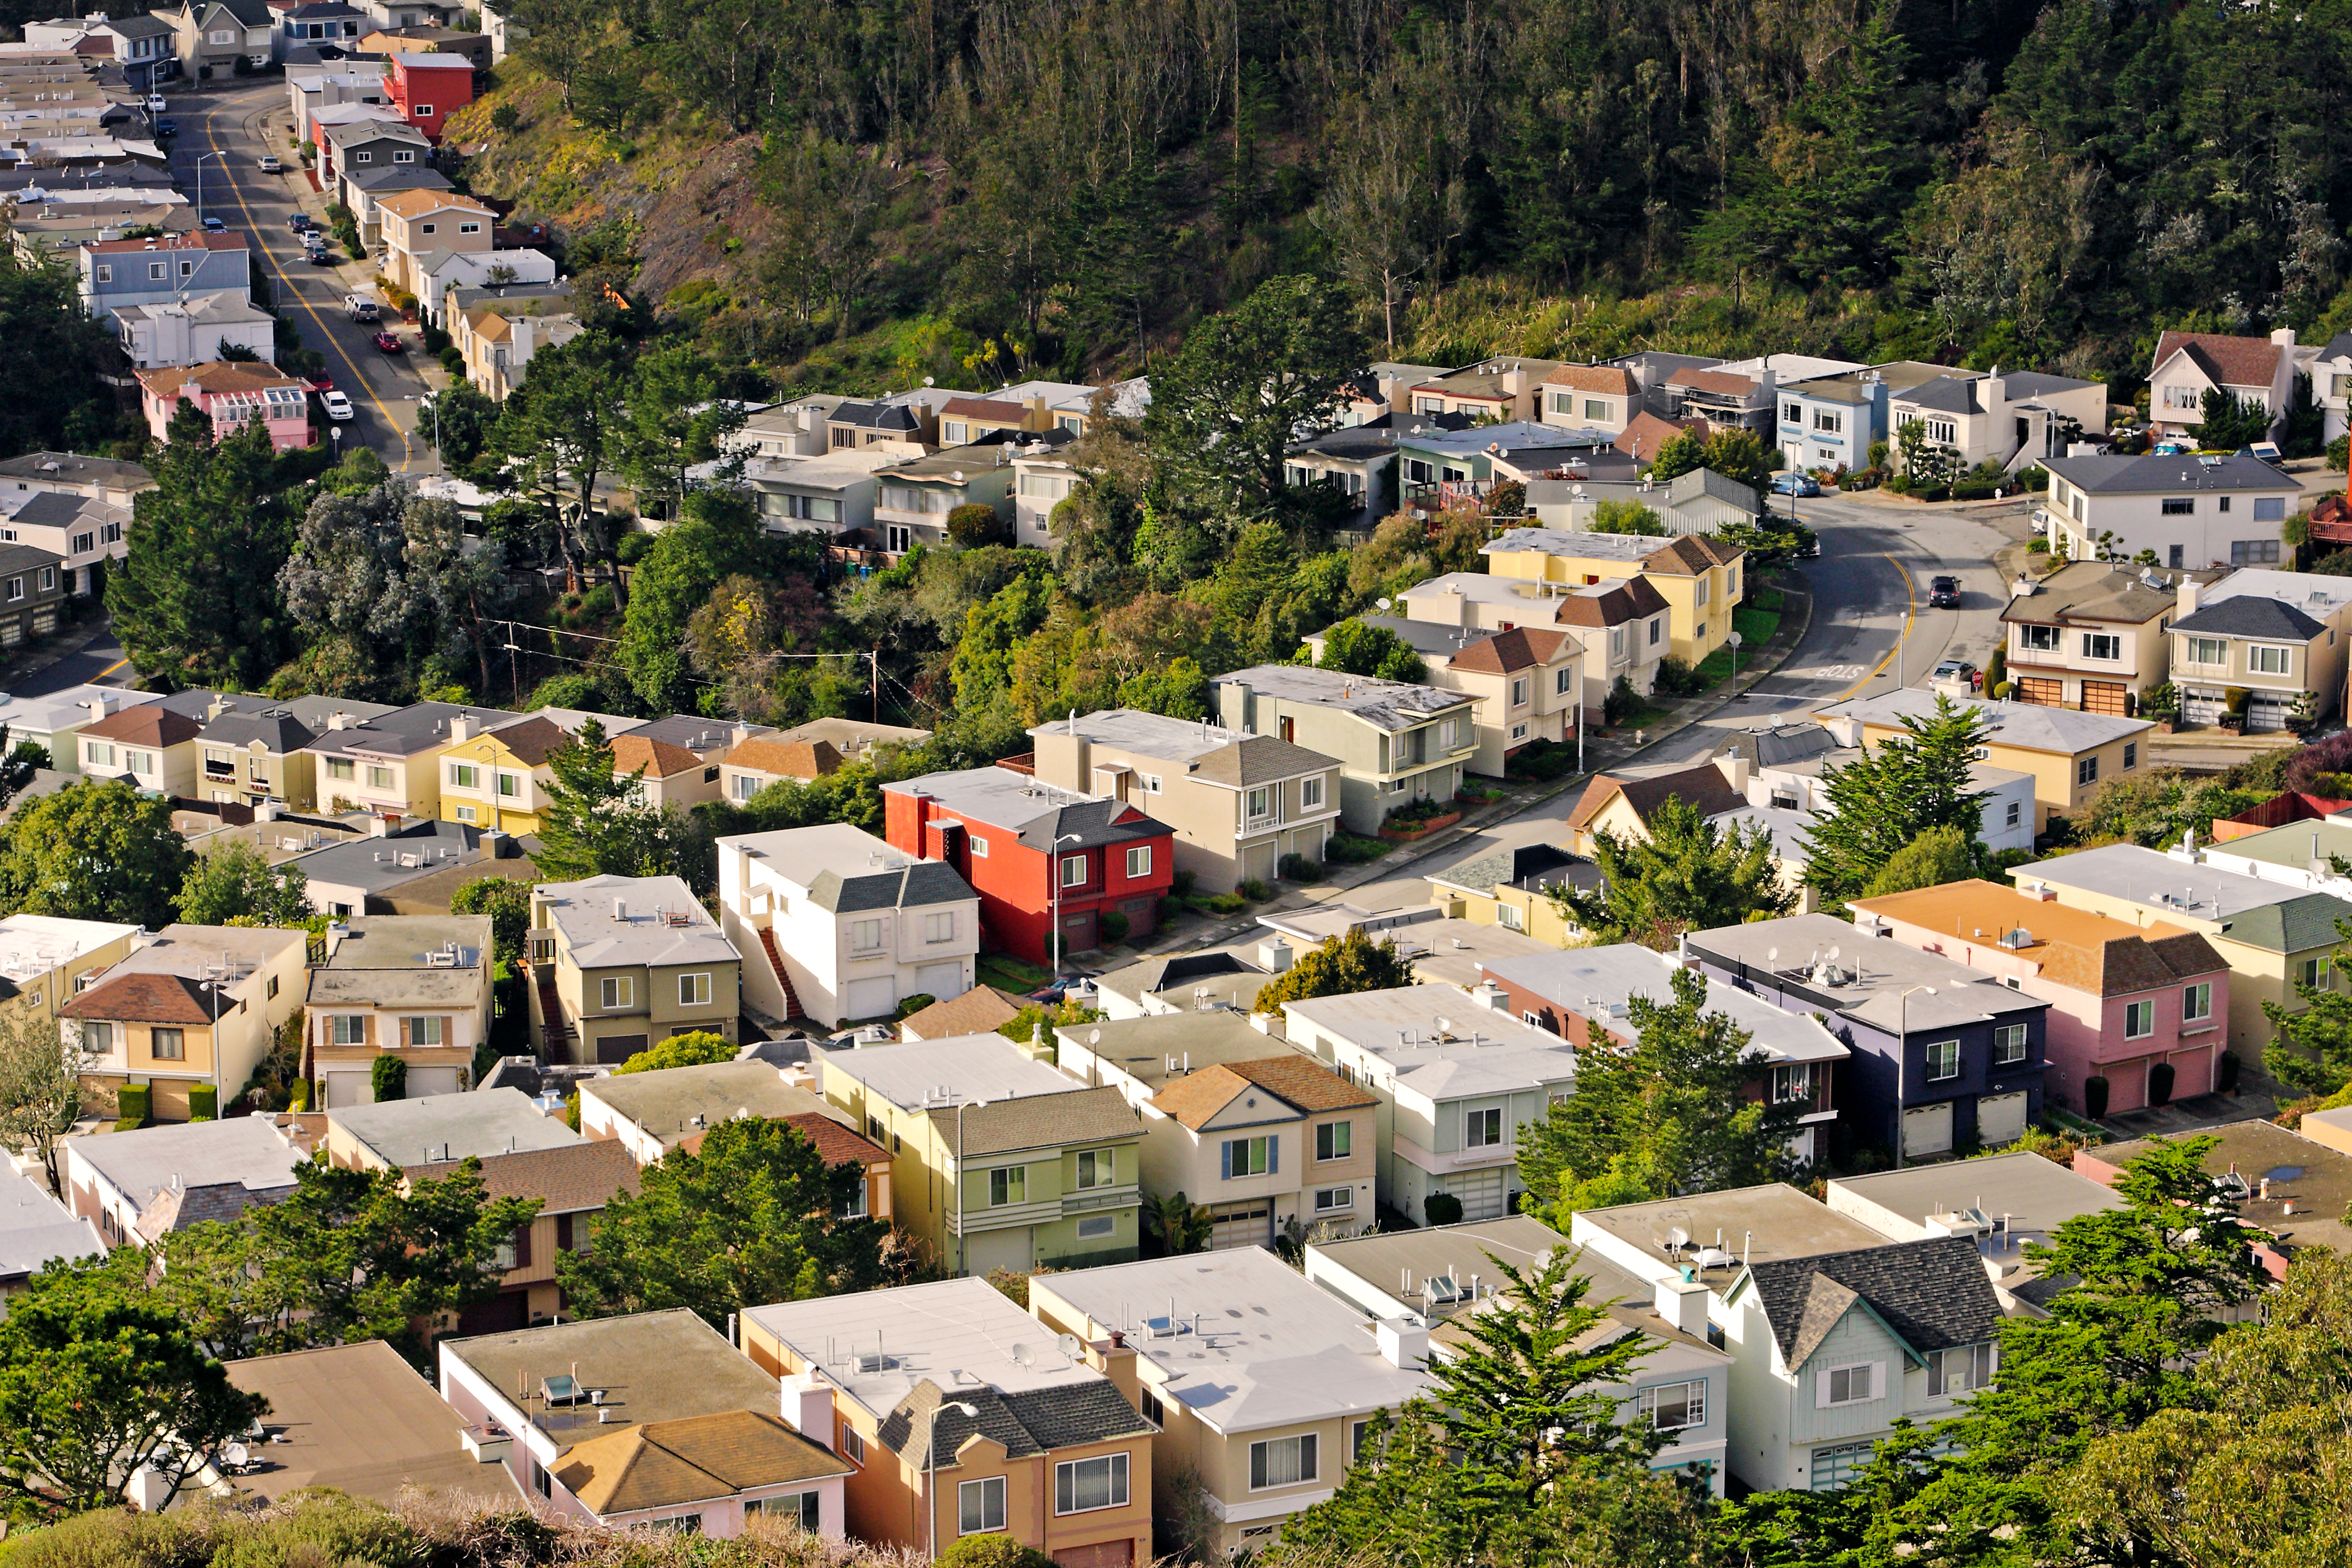 Rows of single-family homes as seen from above.